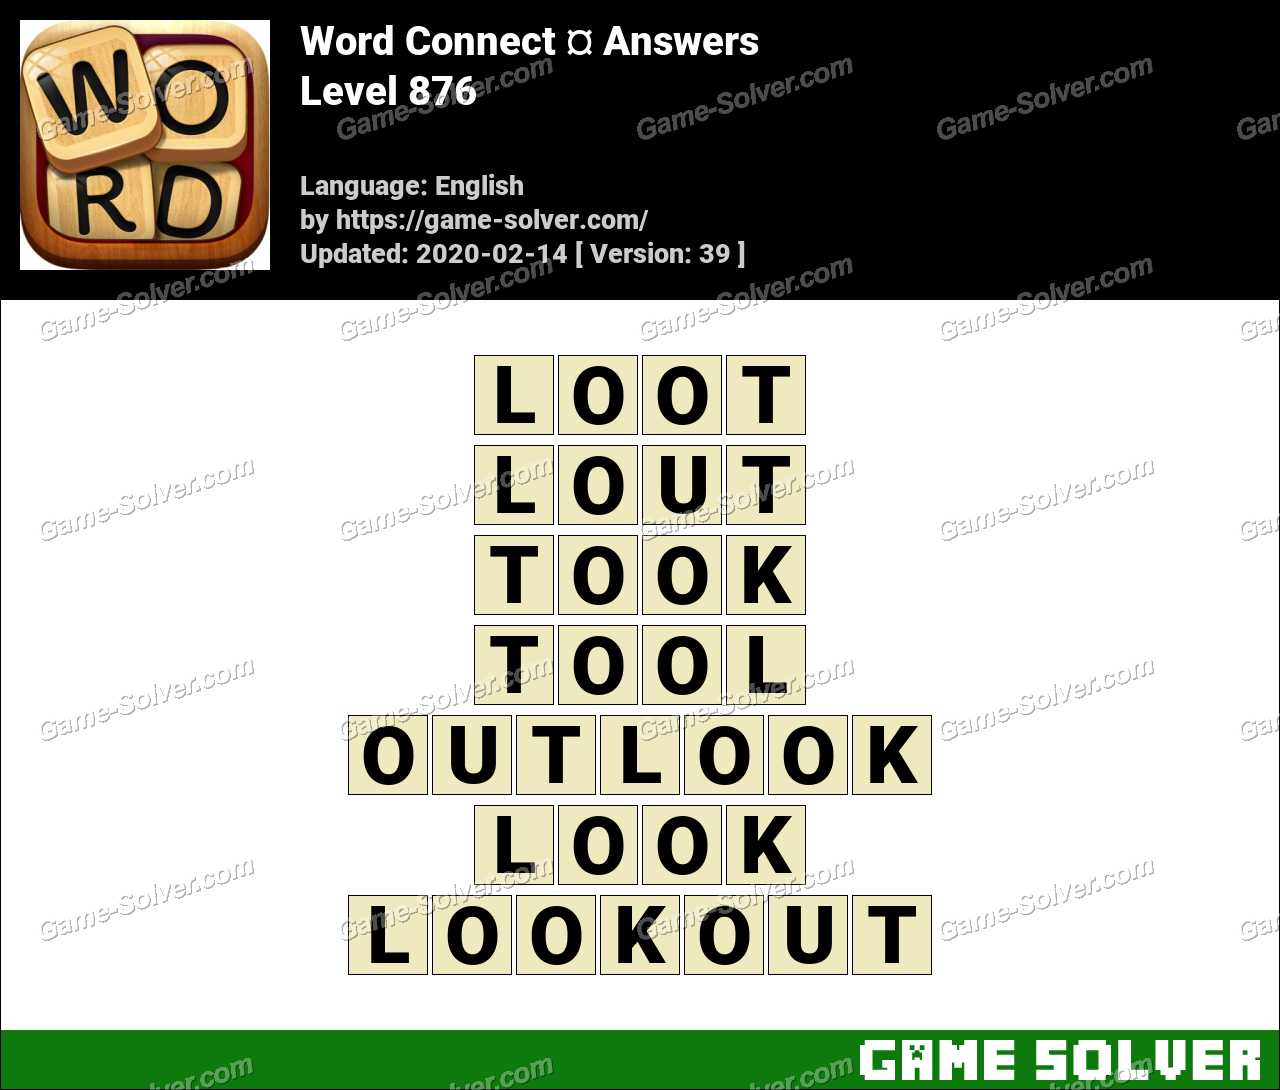 Word Connect Level 876 Answers